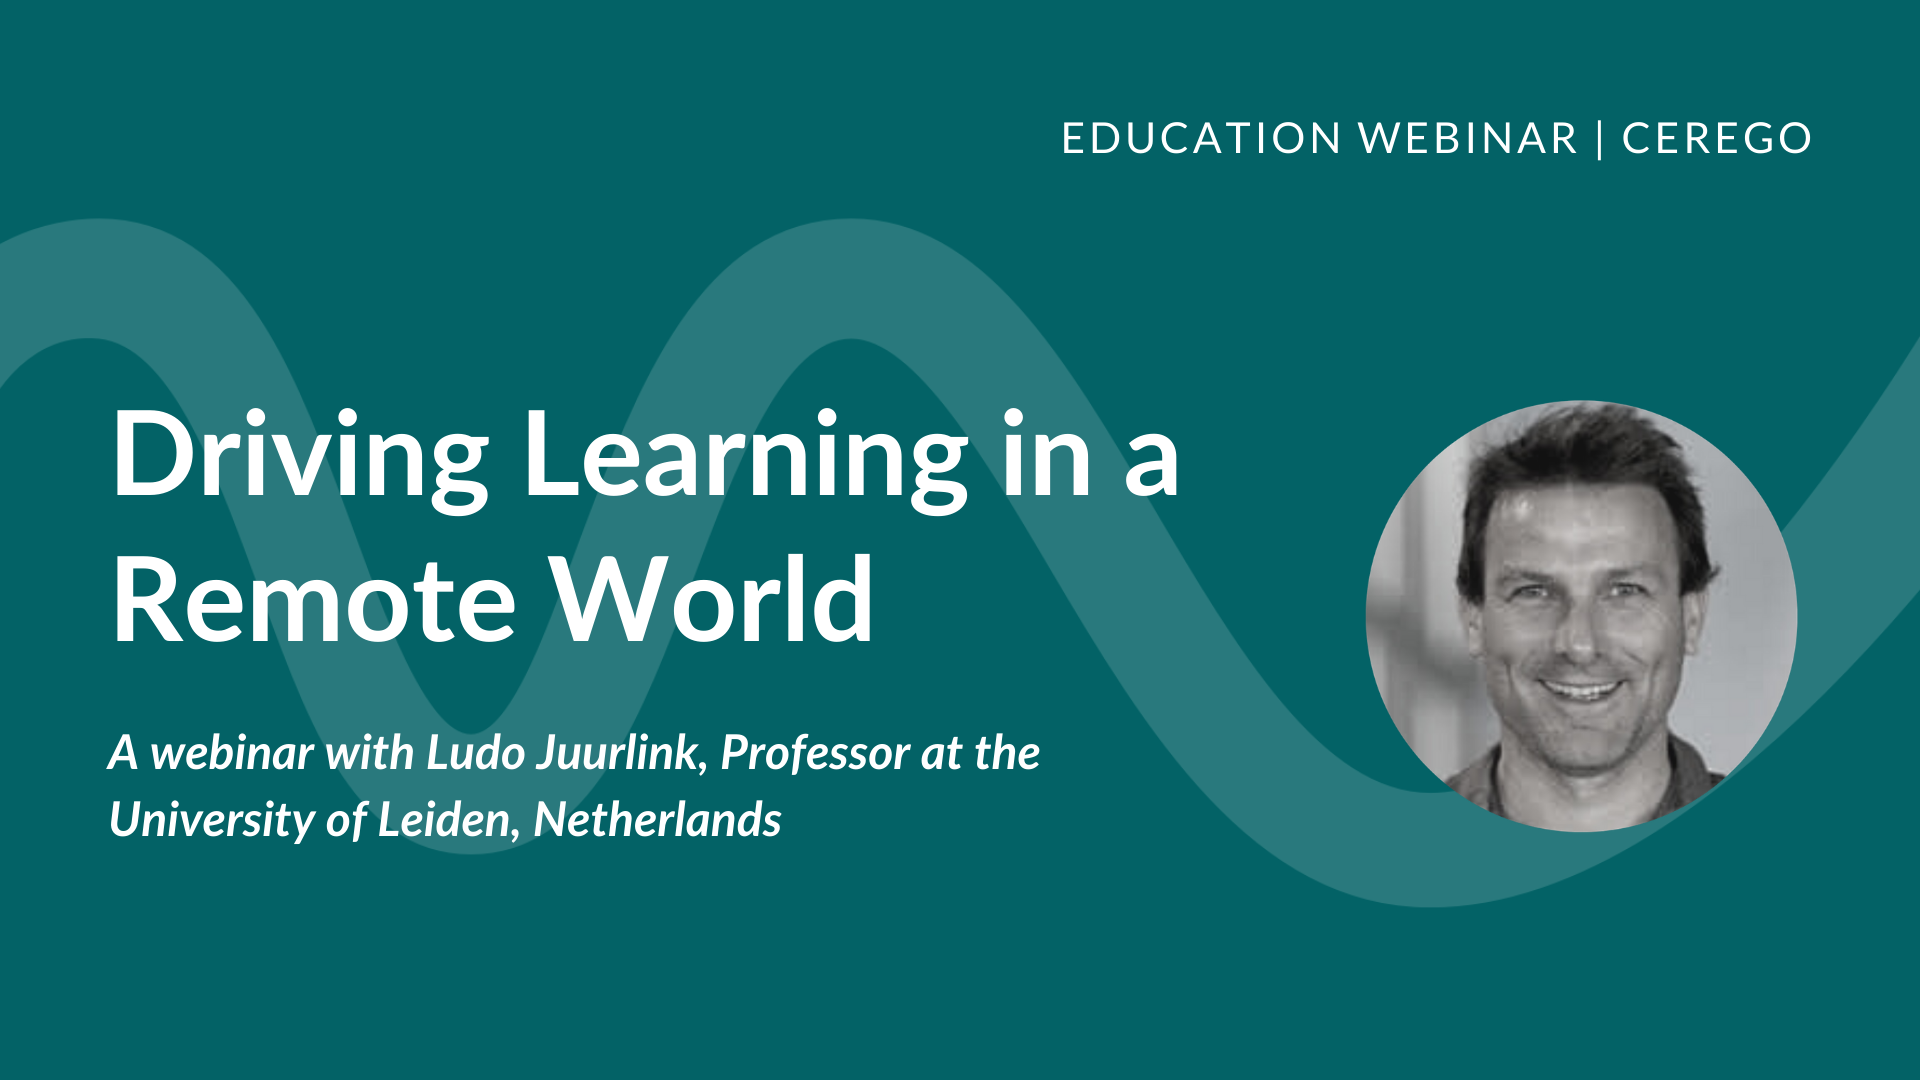 Webinar: Driving Learning in a Remote World